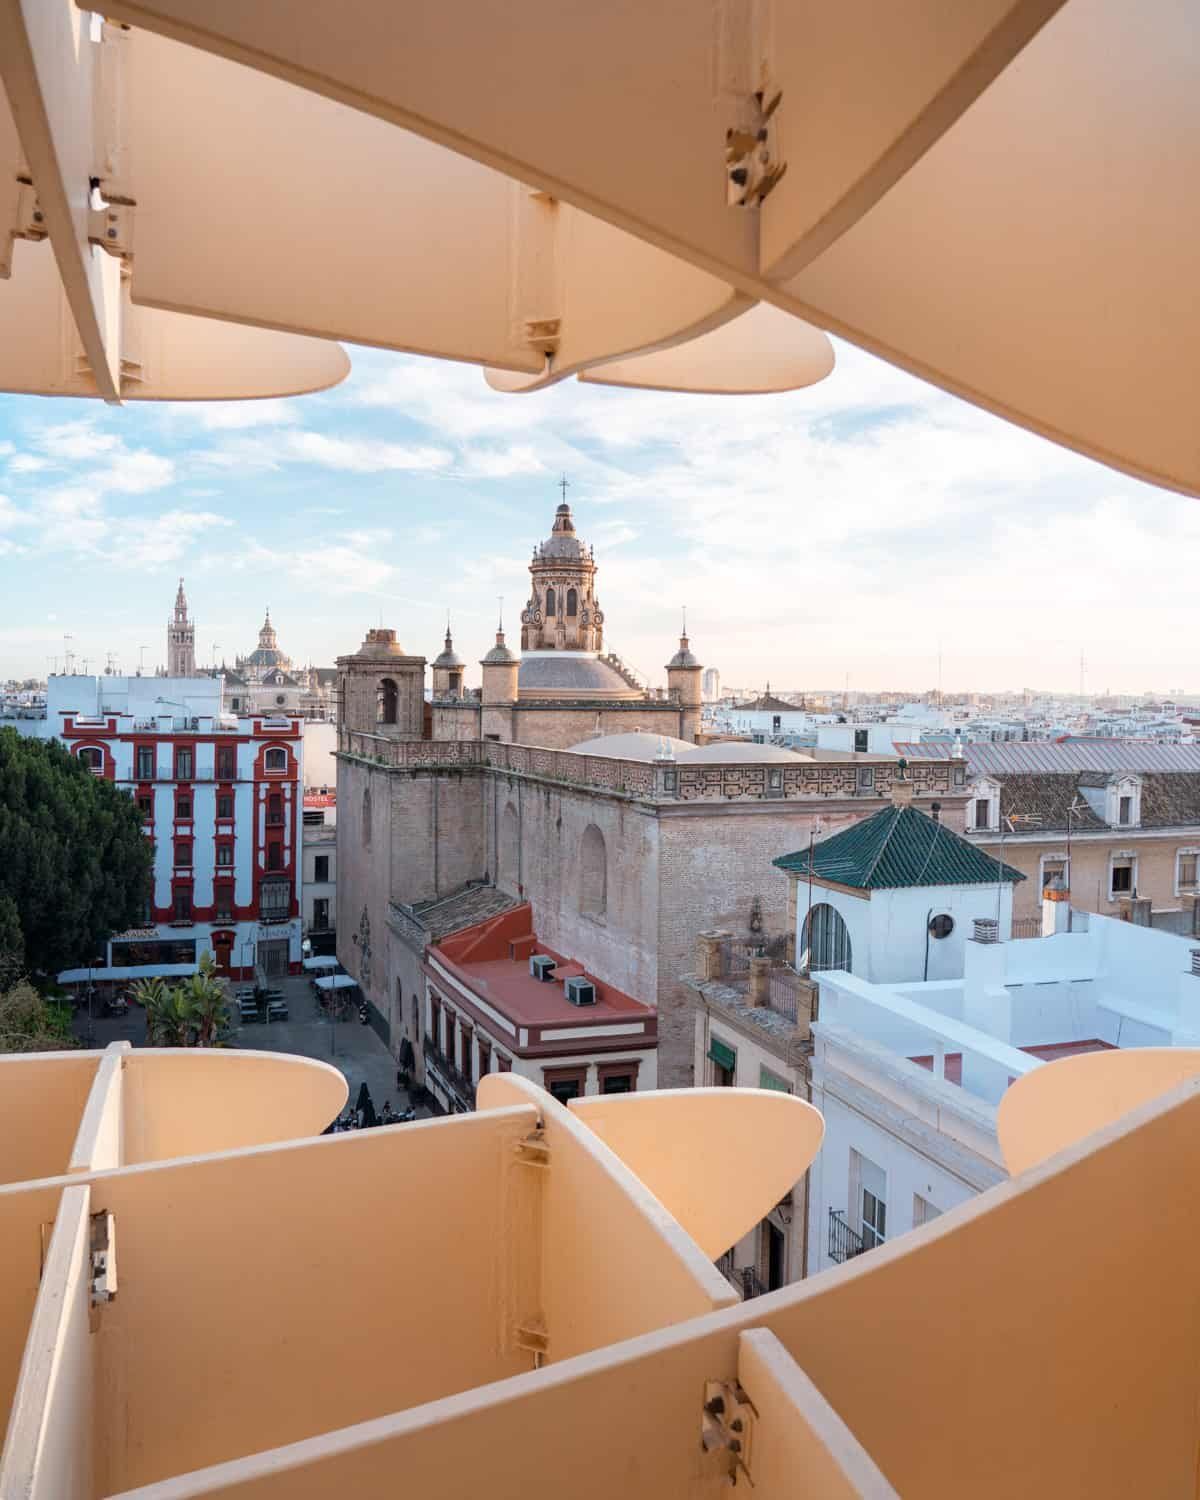 The Seville Cathedral as seen from Metropol Parasol Seville